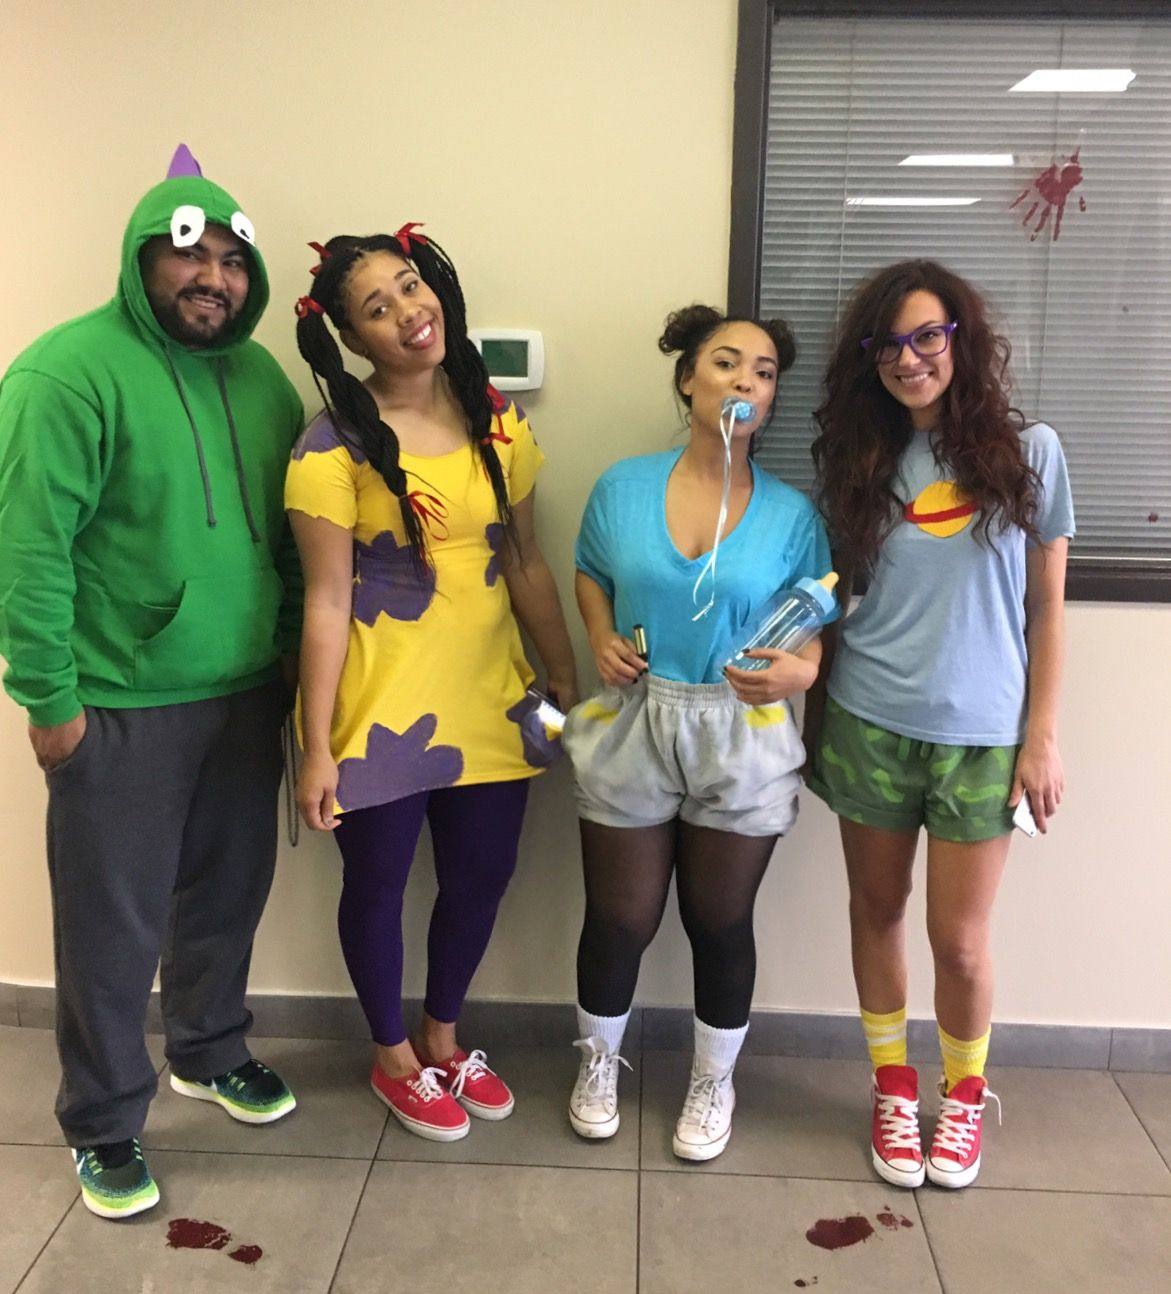 Rugrats! Reptar Susie Charmichael Tommy Pickles Chuckie Finster  sc 1 st  Pinterest & Rugrats! Reptar Susie Charmichael Tommy Pickles Chuckie Finster ...